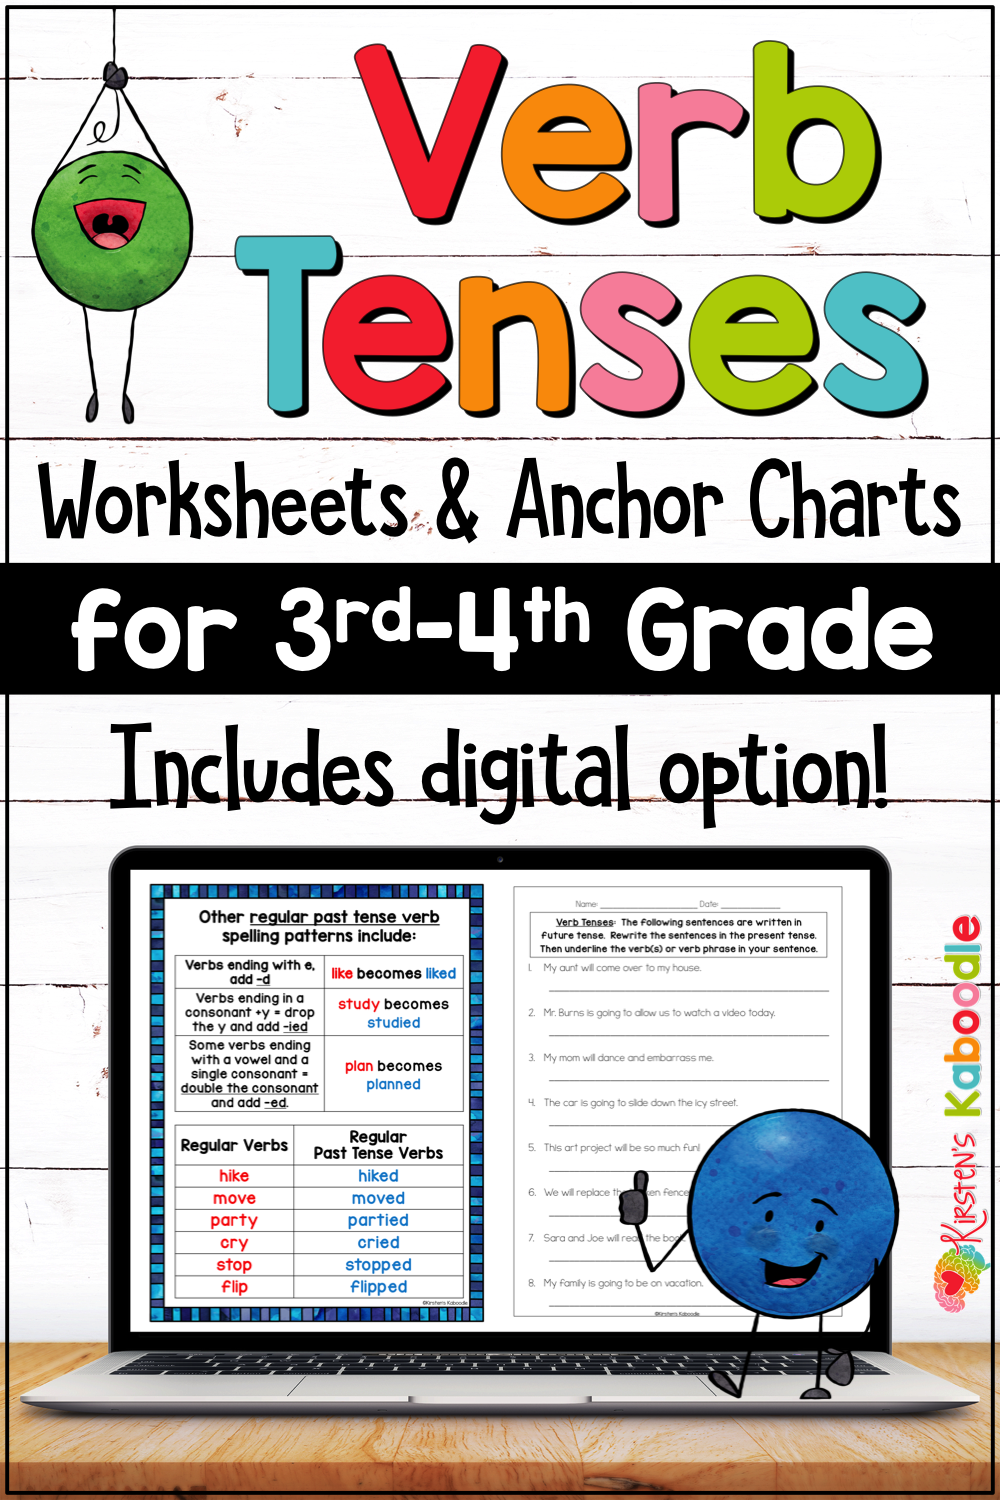 Verb Tenses Anchor Charts Activities And Worksheets With Google Slides Option For 3rd 4th Grade Verb Tenses Verbs Anchor Chart Anchor Charts [ 1500 x 1000 Pixel ]